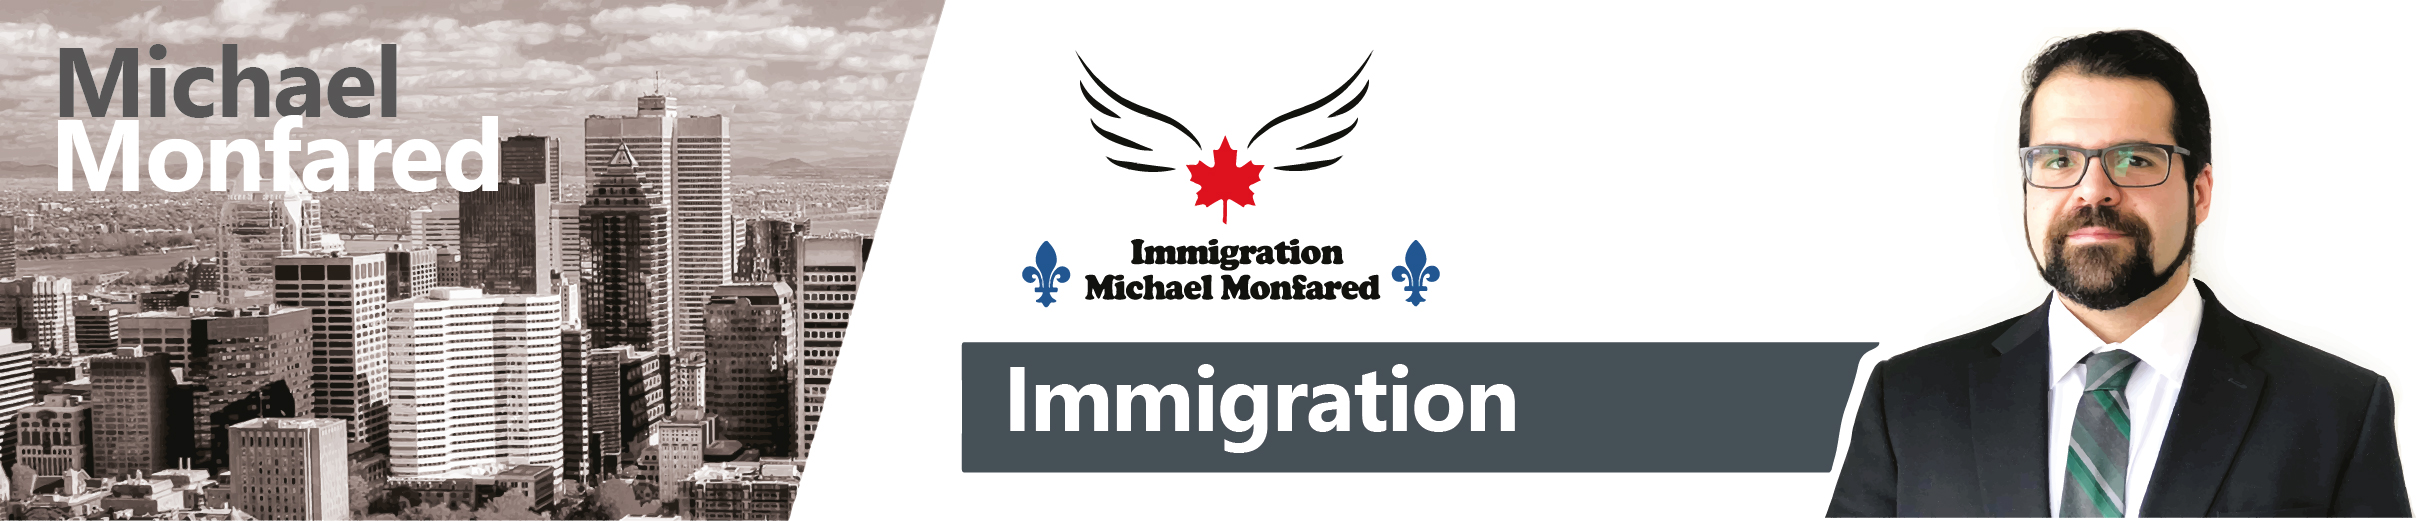 Election 2019: Where Canada's Electoral Parties Stand on Current Canadian Immigration